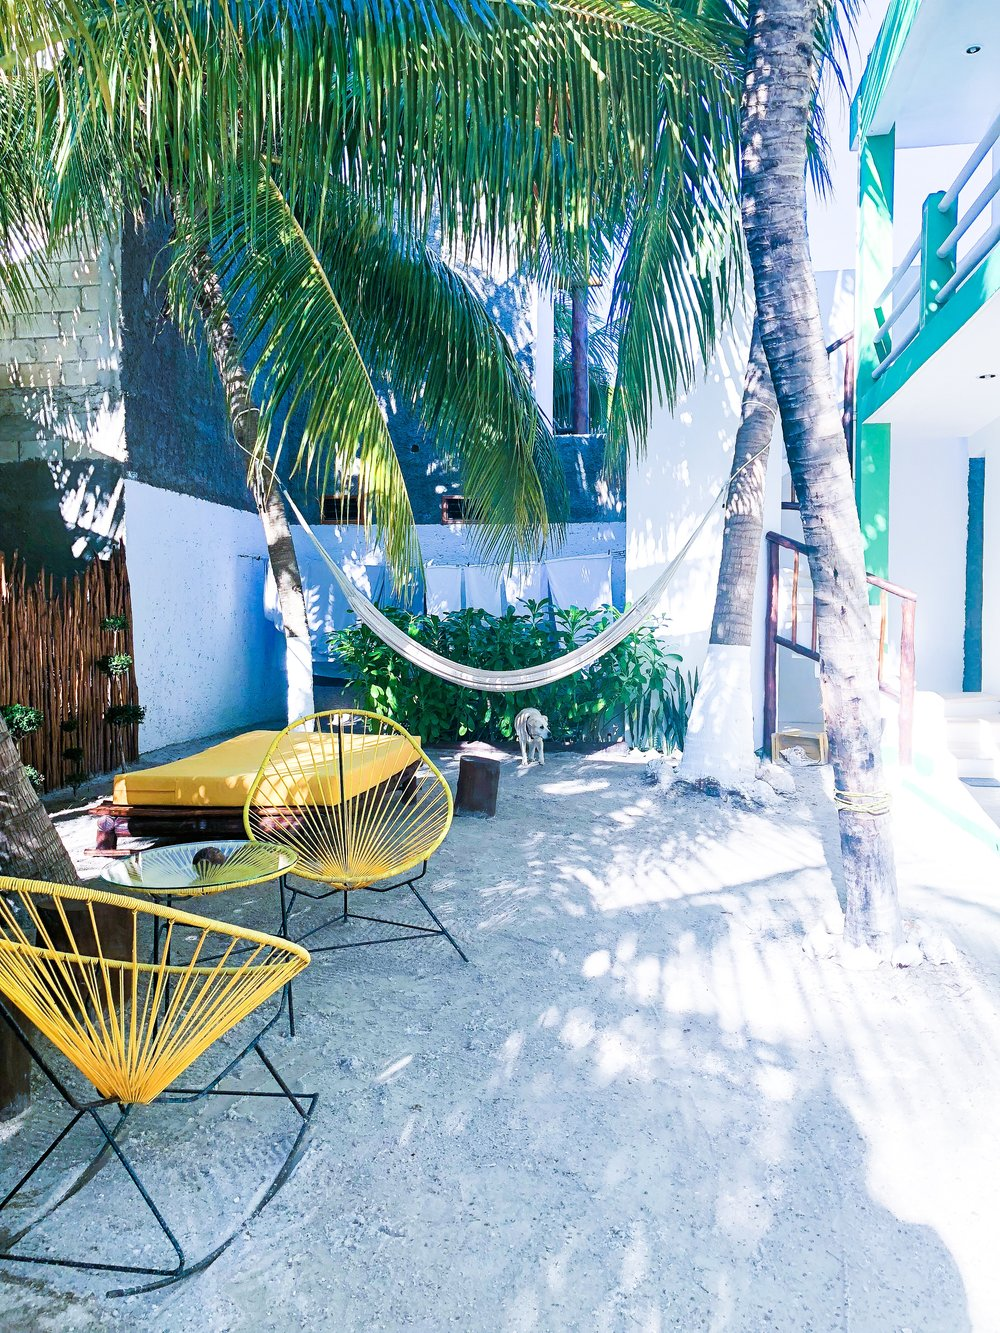 One of the places we slept! The owners had the sweetest pups! - Isla de Holbox, Mexico